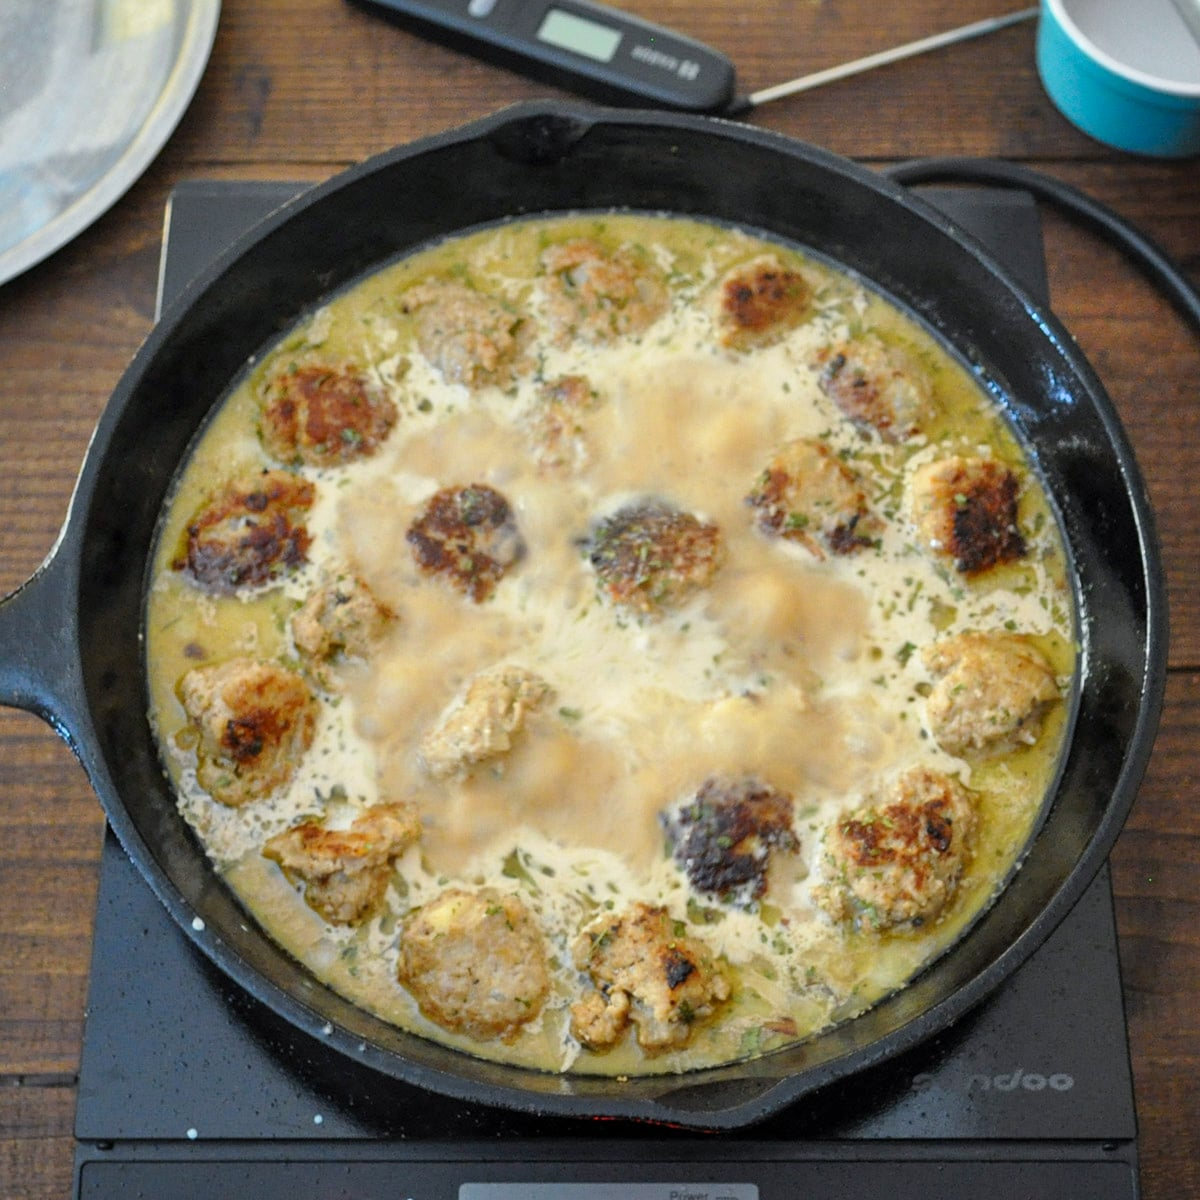 meatballs cooking in broth and cream in a cast iron skillet